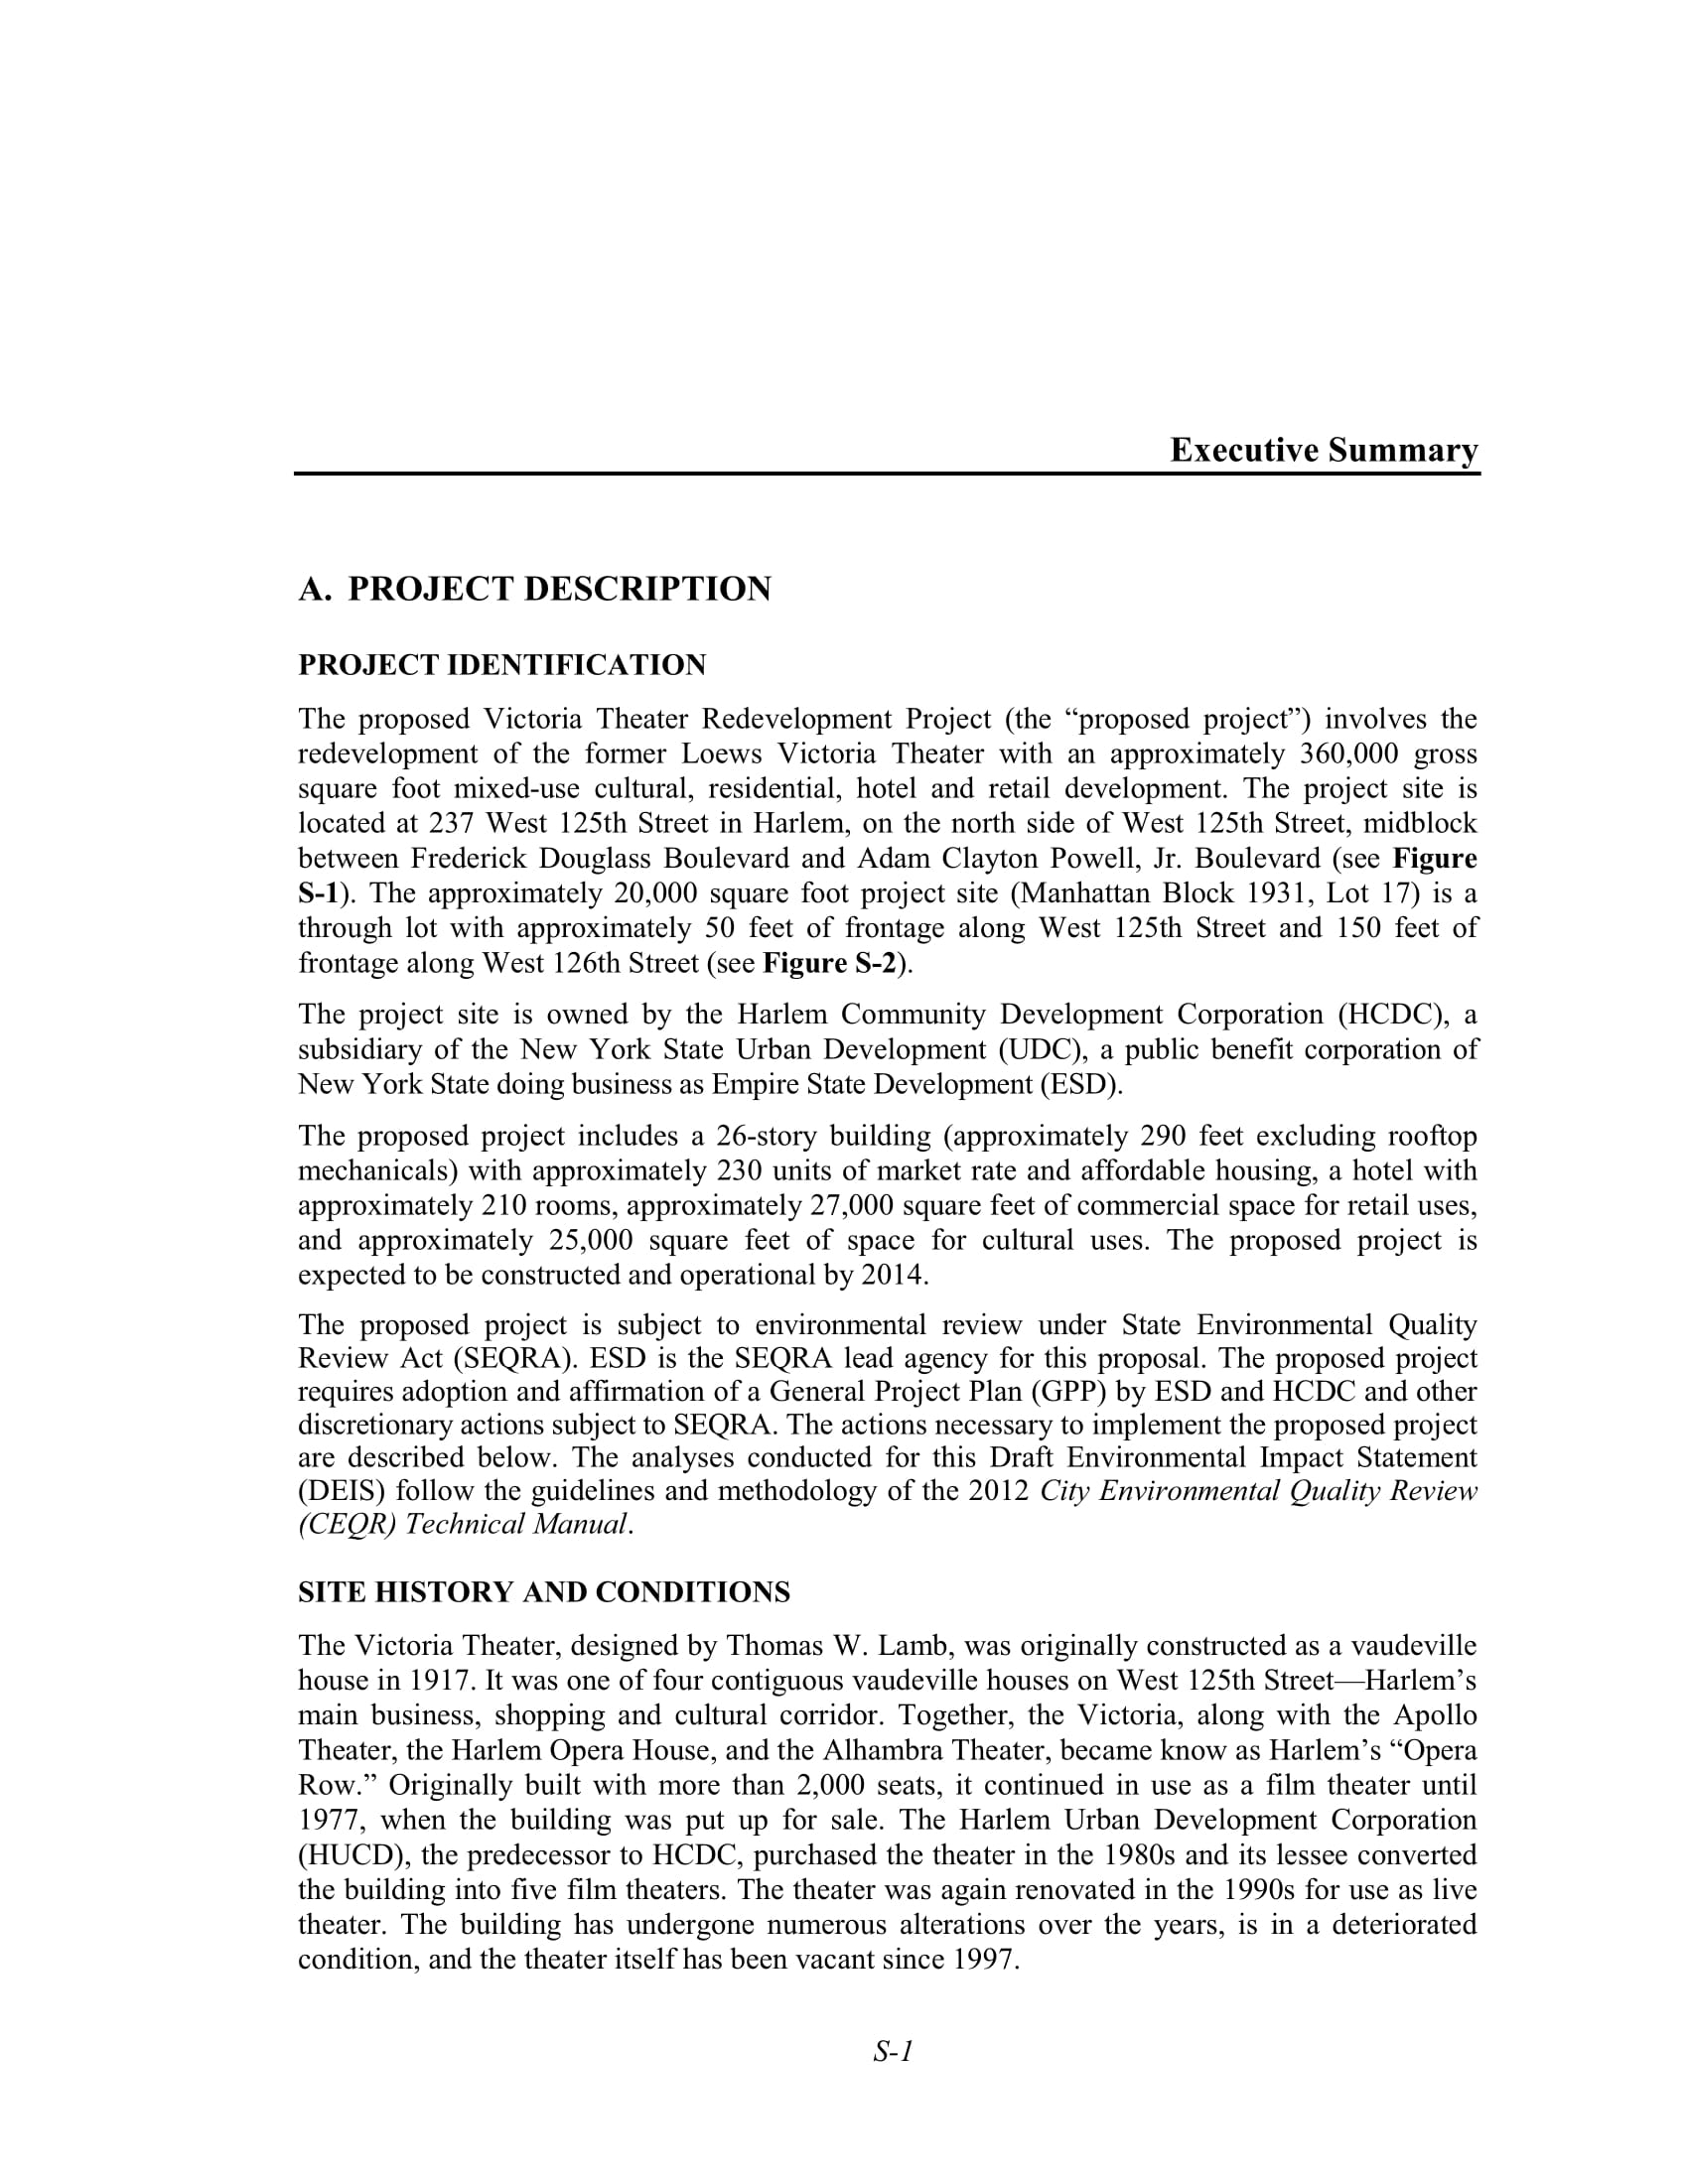 theater redevelopment project proposal executive summary example